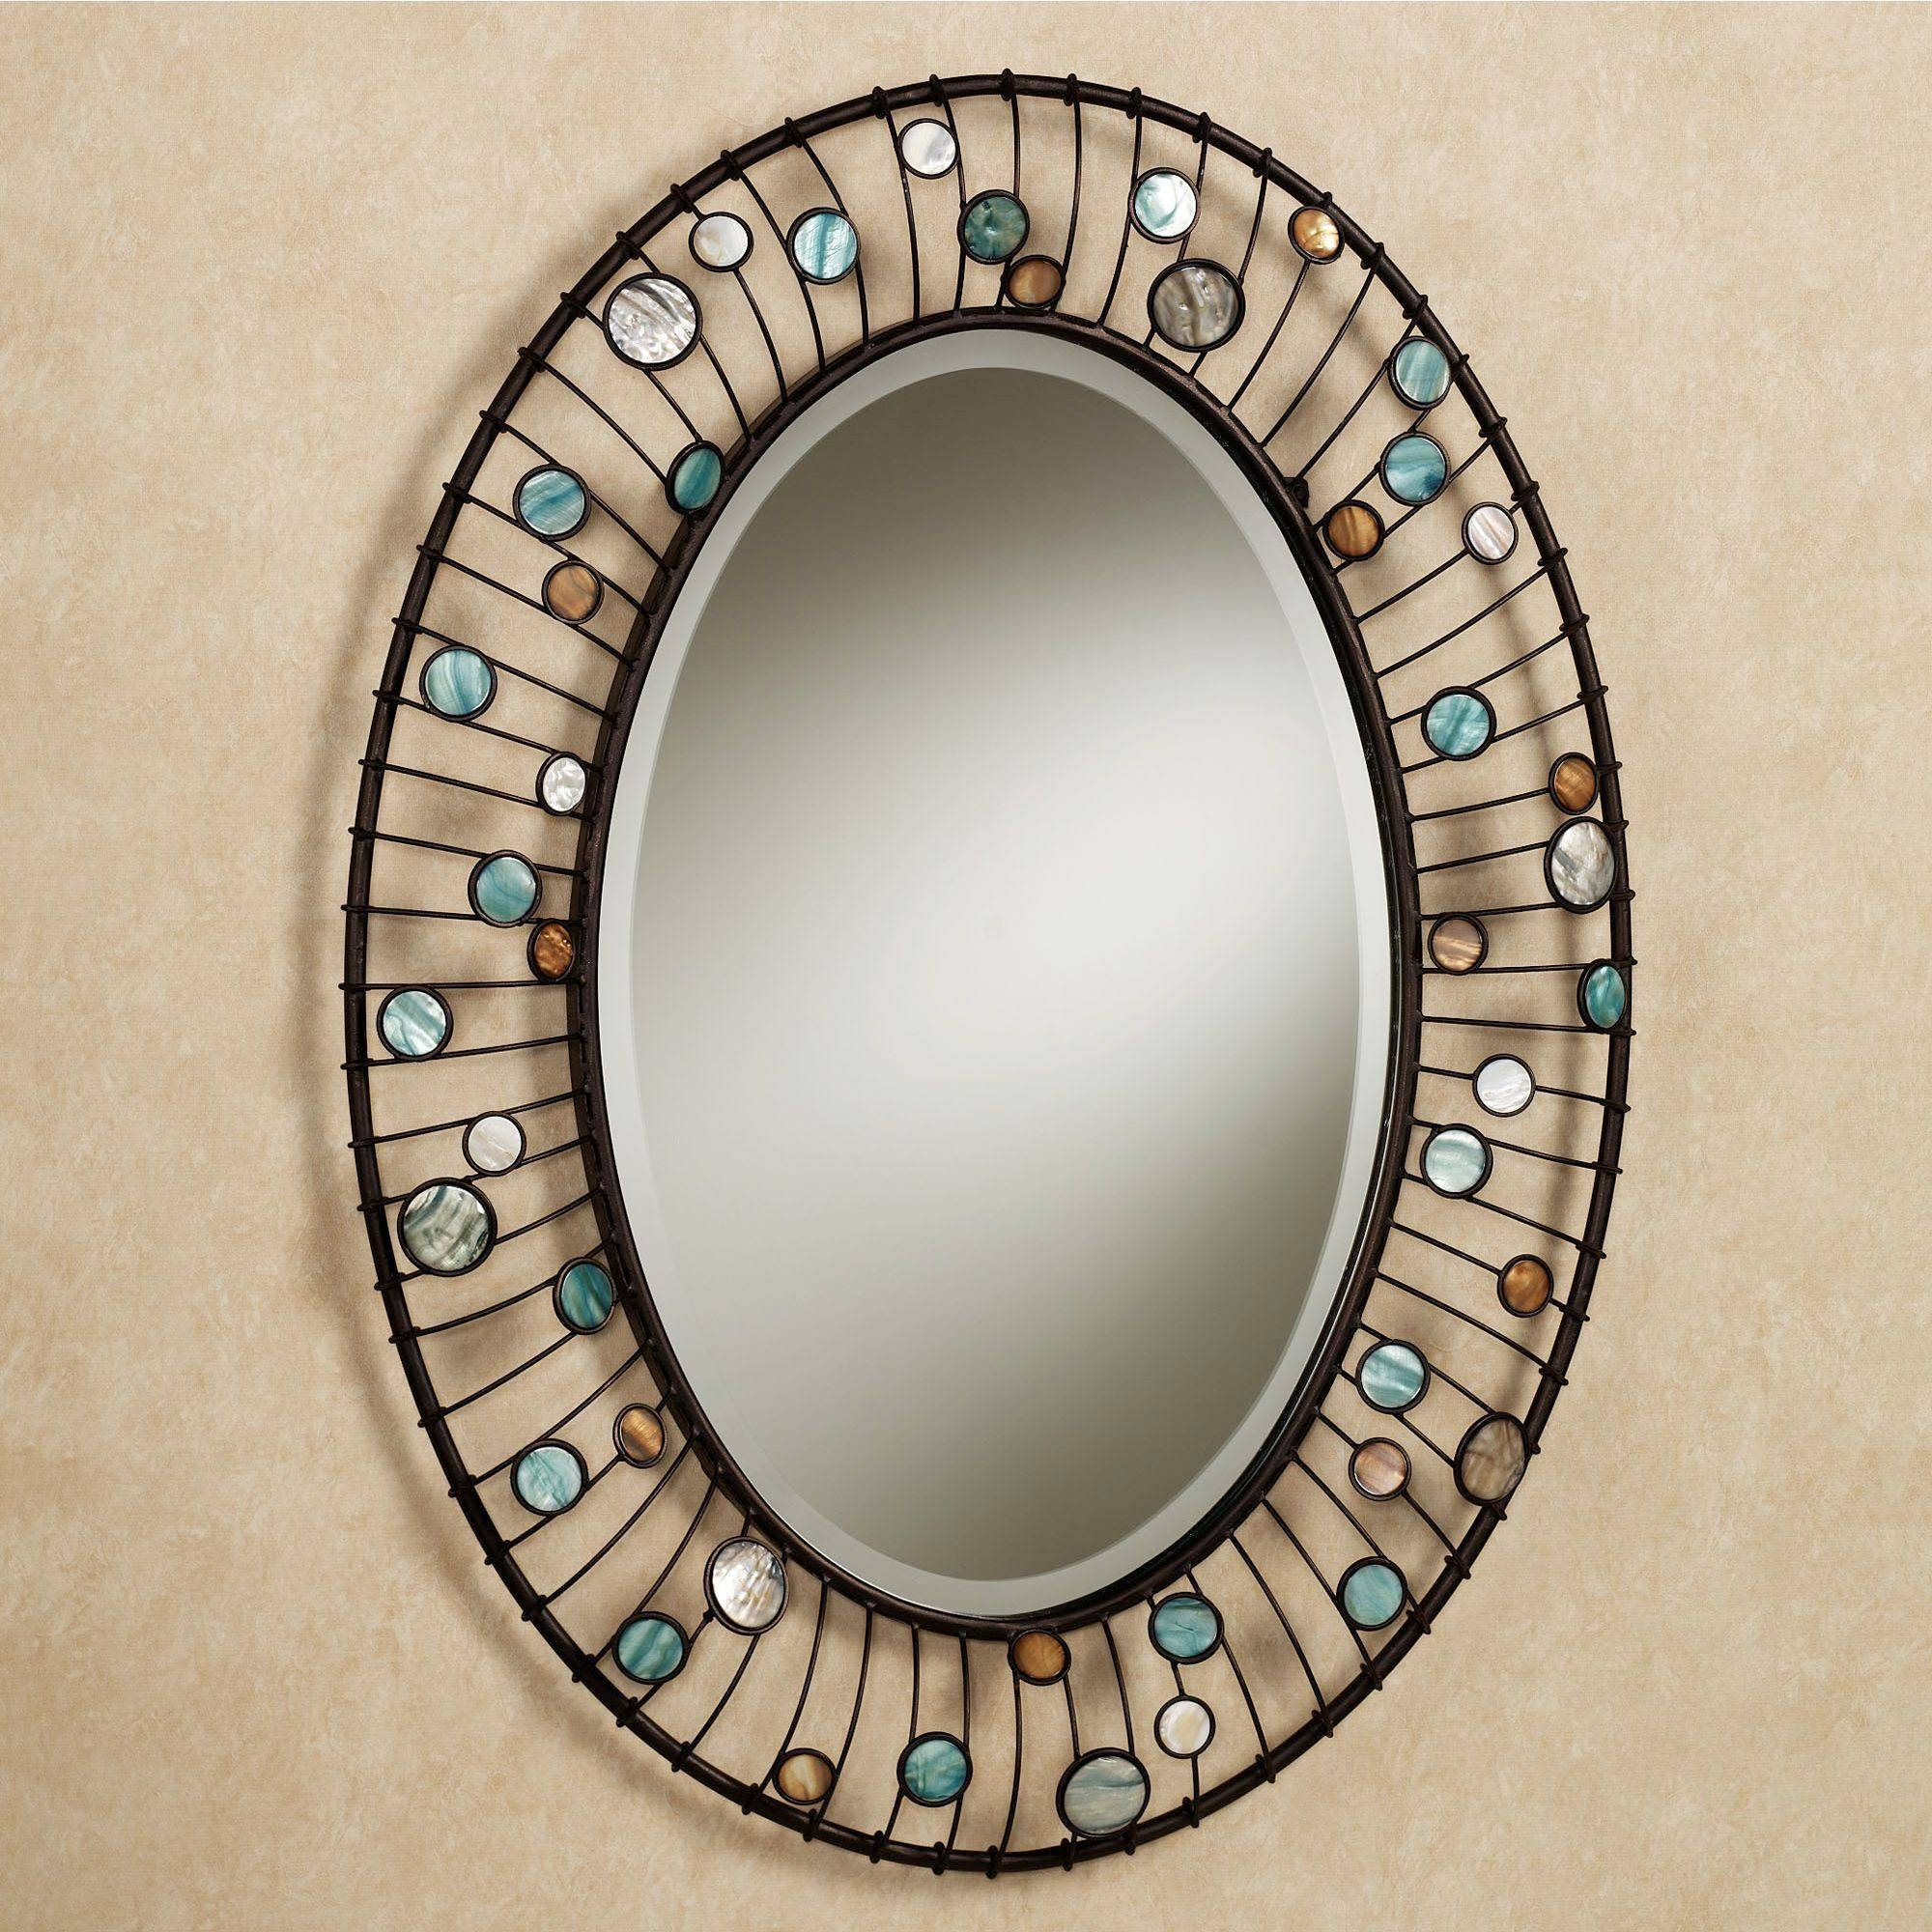 Capizia Oval Wall Mirror within Silver Oval Wall Mirrors (Image 7 of 25)